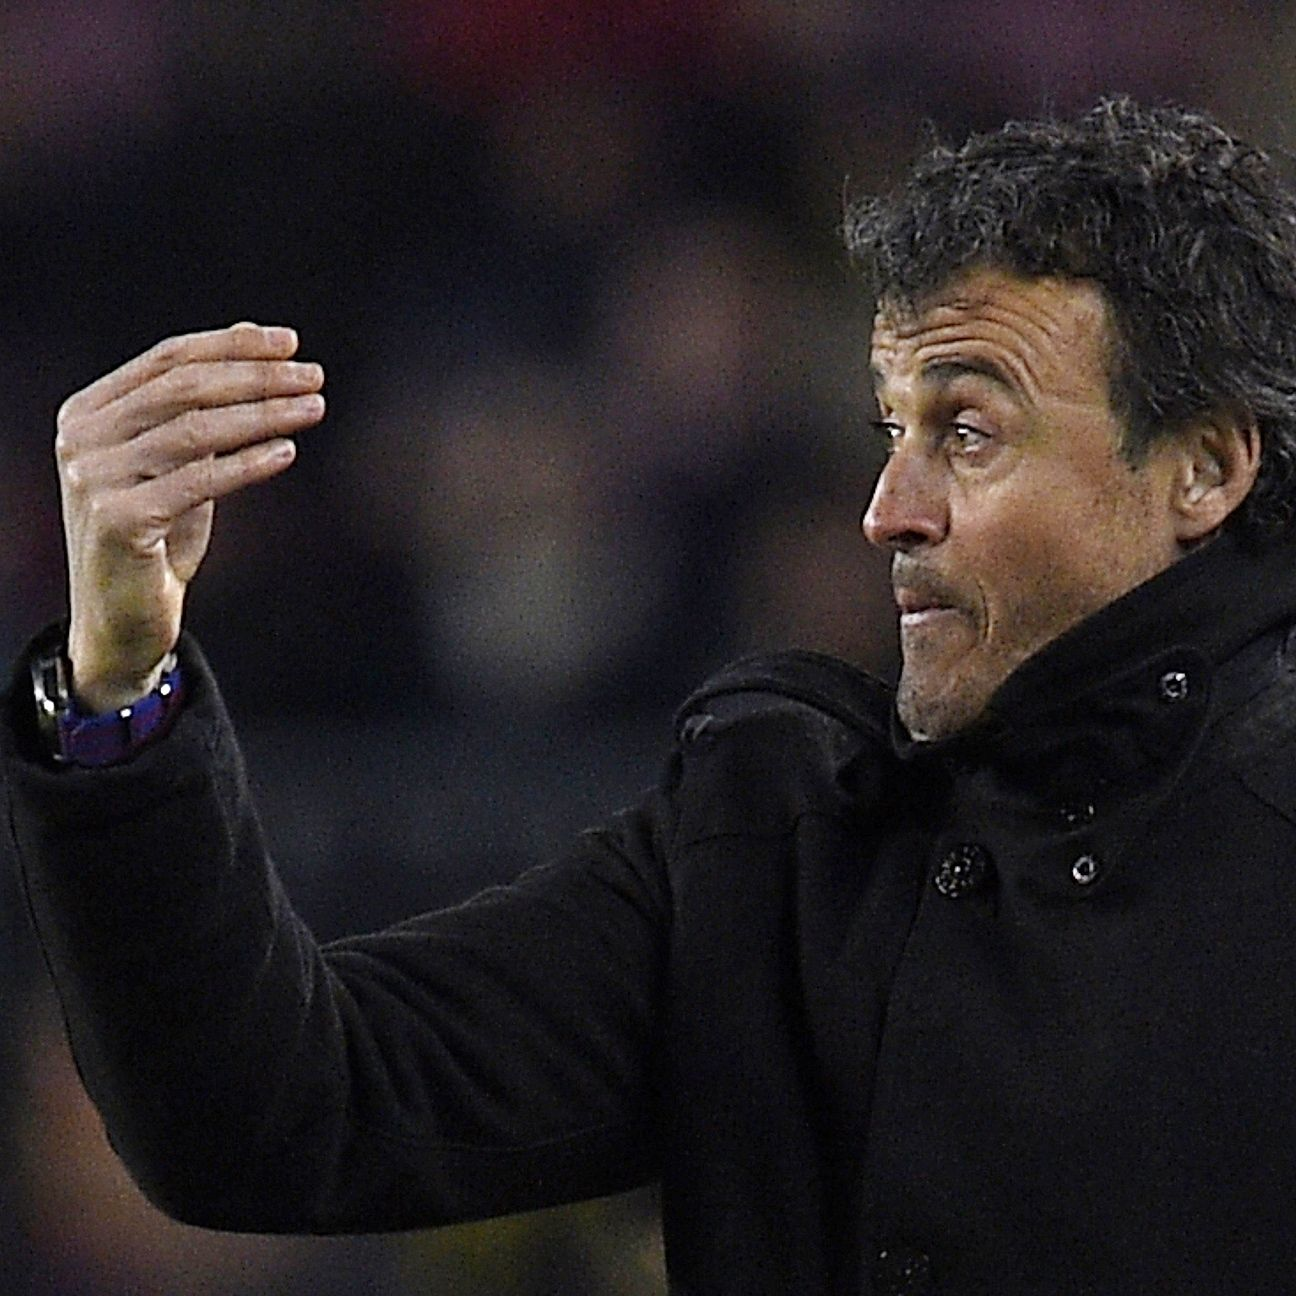 Once Luis Enrique settled on a starting XI, his Barcelona side took flight.